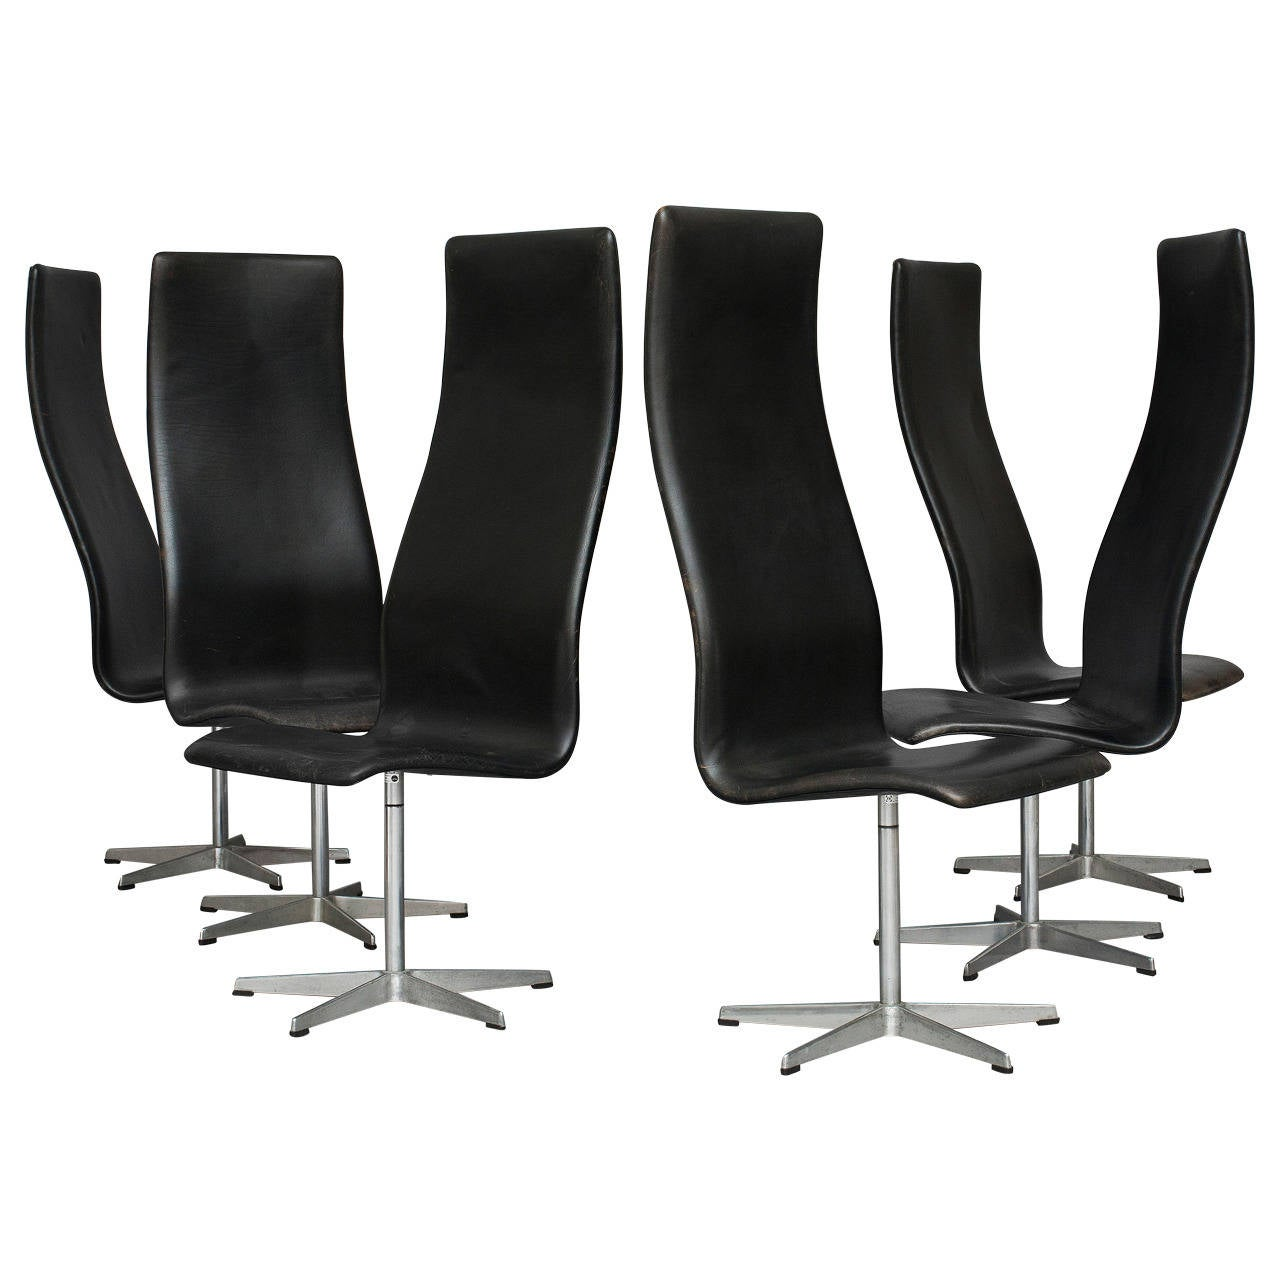 set of six oxford chairs by arne jacobsen for fritz hansen for sale at 1stdibs. Black Bedroom Furniture Sets. Home Design Ideas